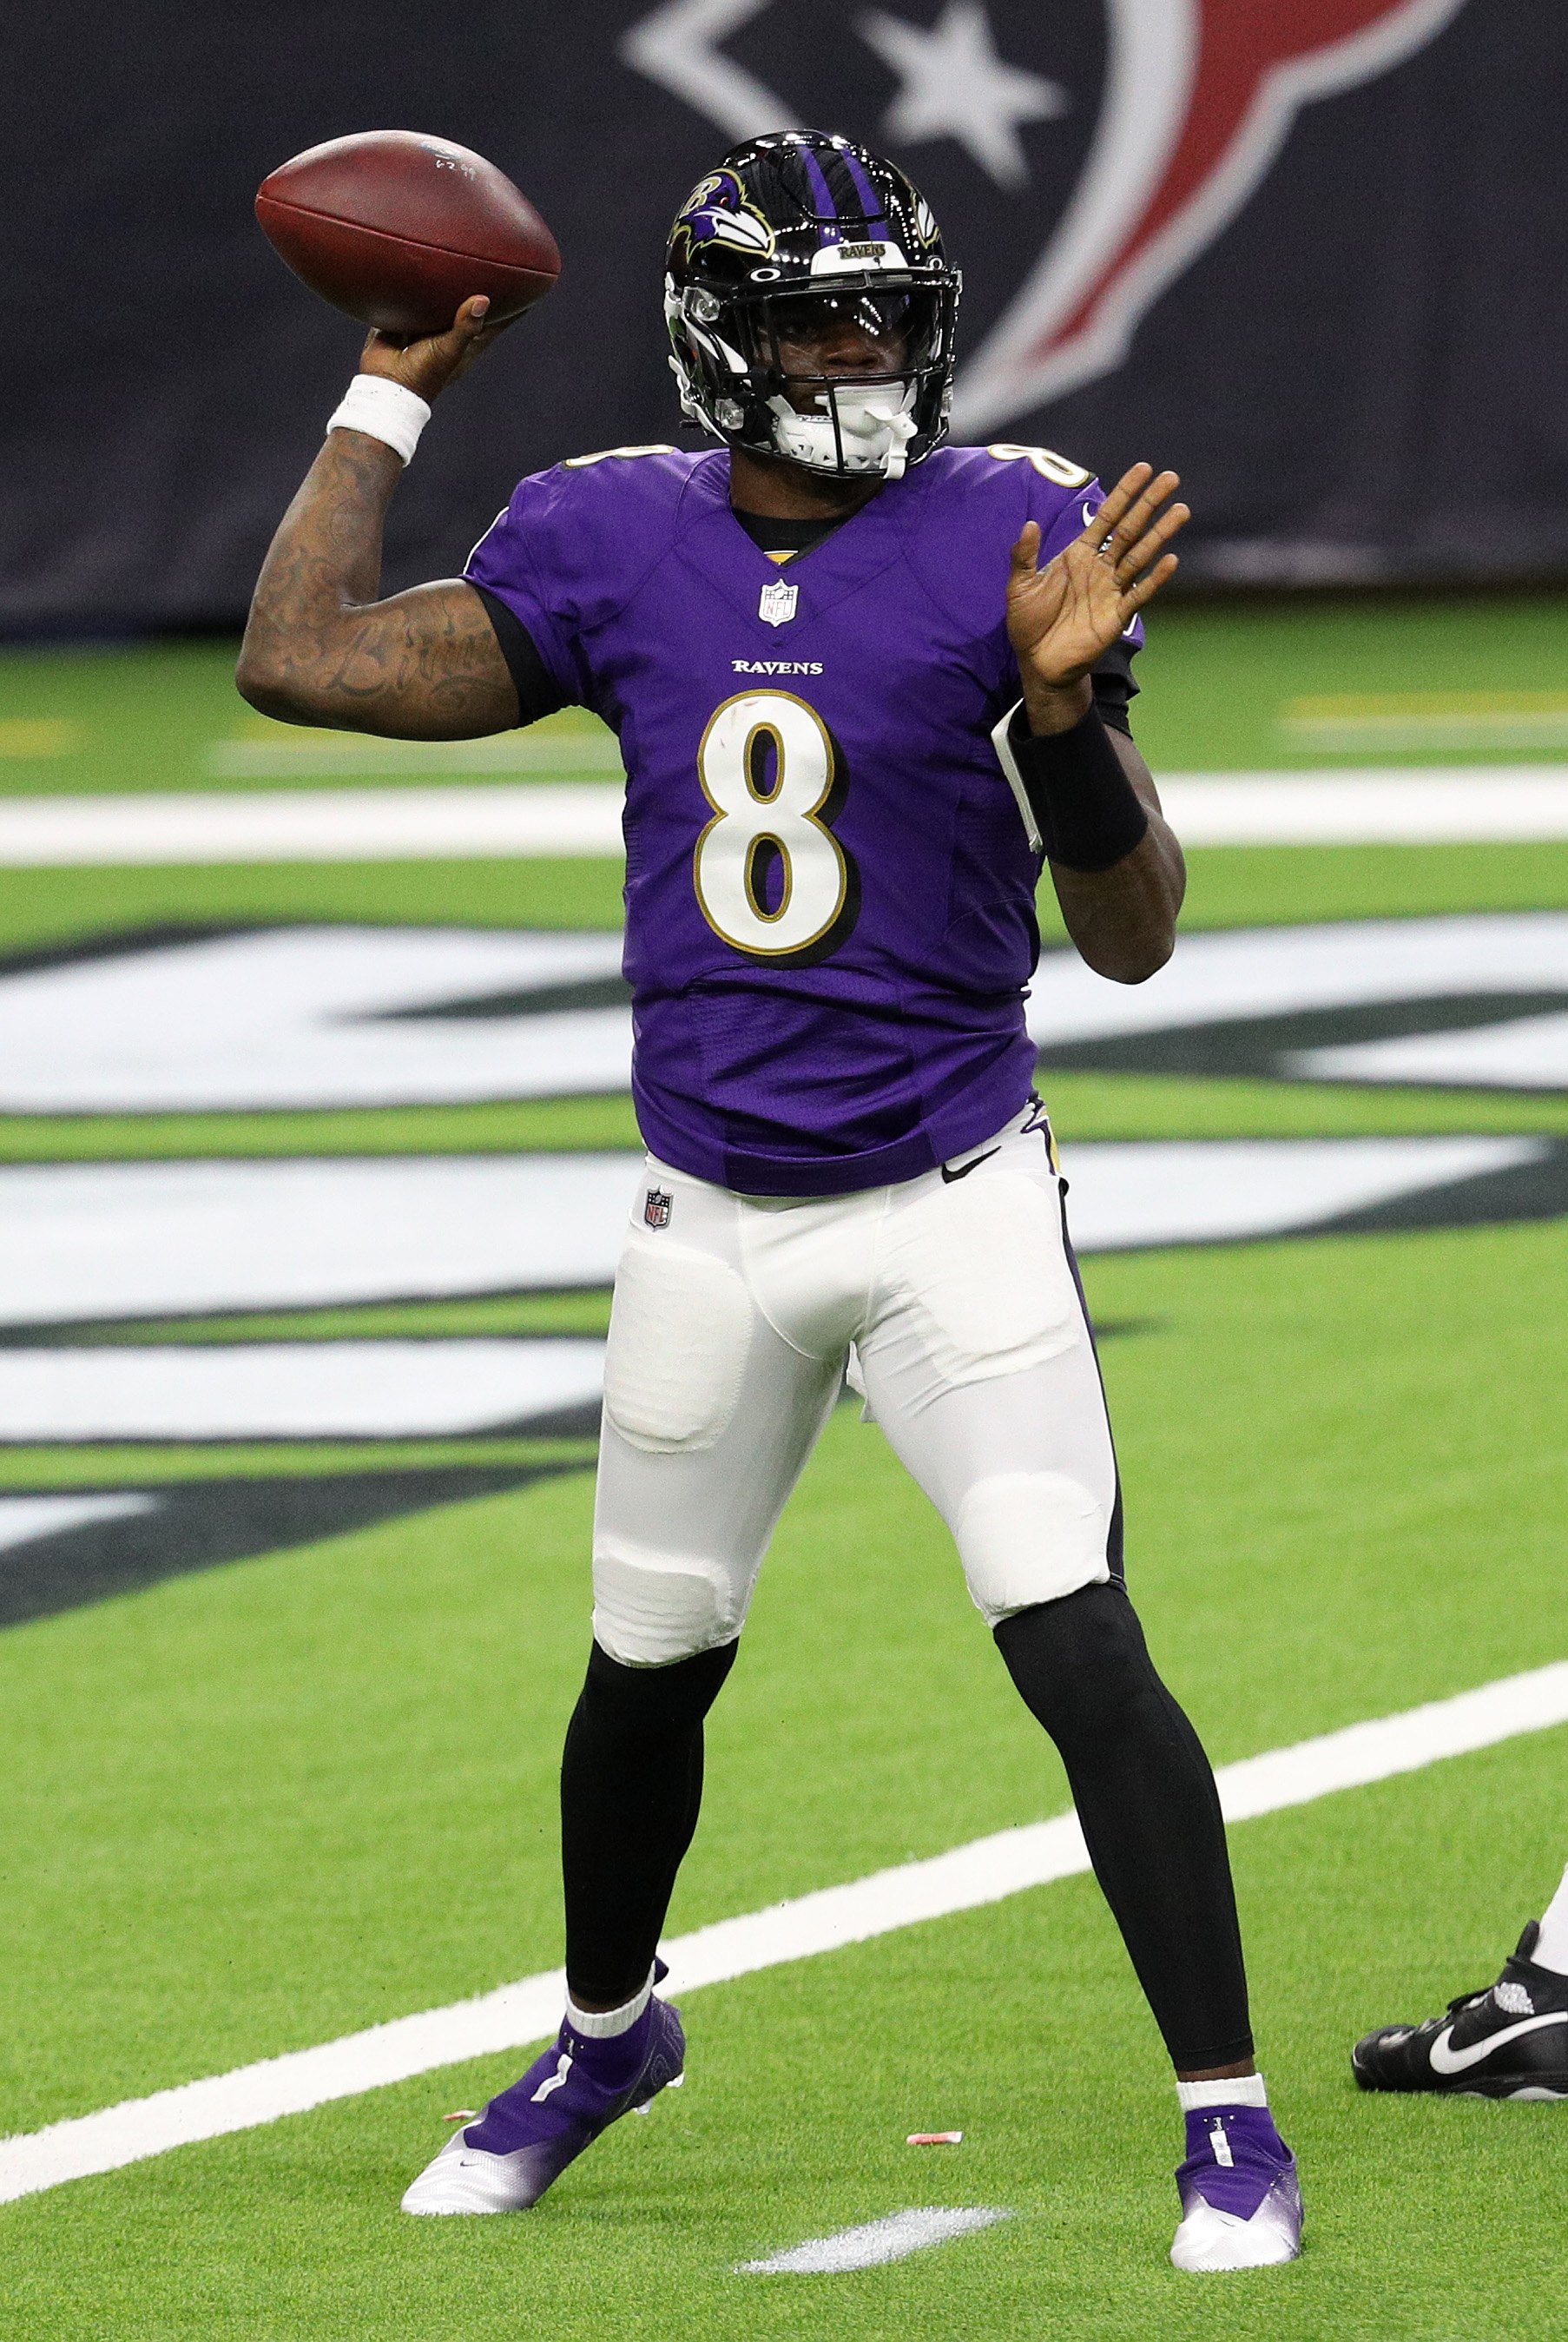 Lamar Jackson of the Baltimore Ravens passes against the Houston Texans during the first half at NRG Stadium on September 20, 2020 in Houston, Texas.